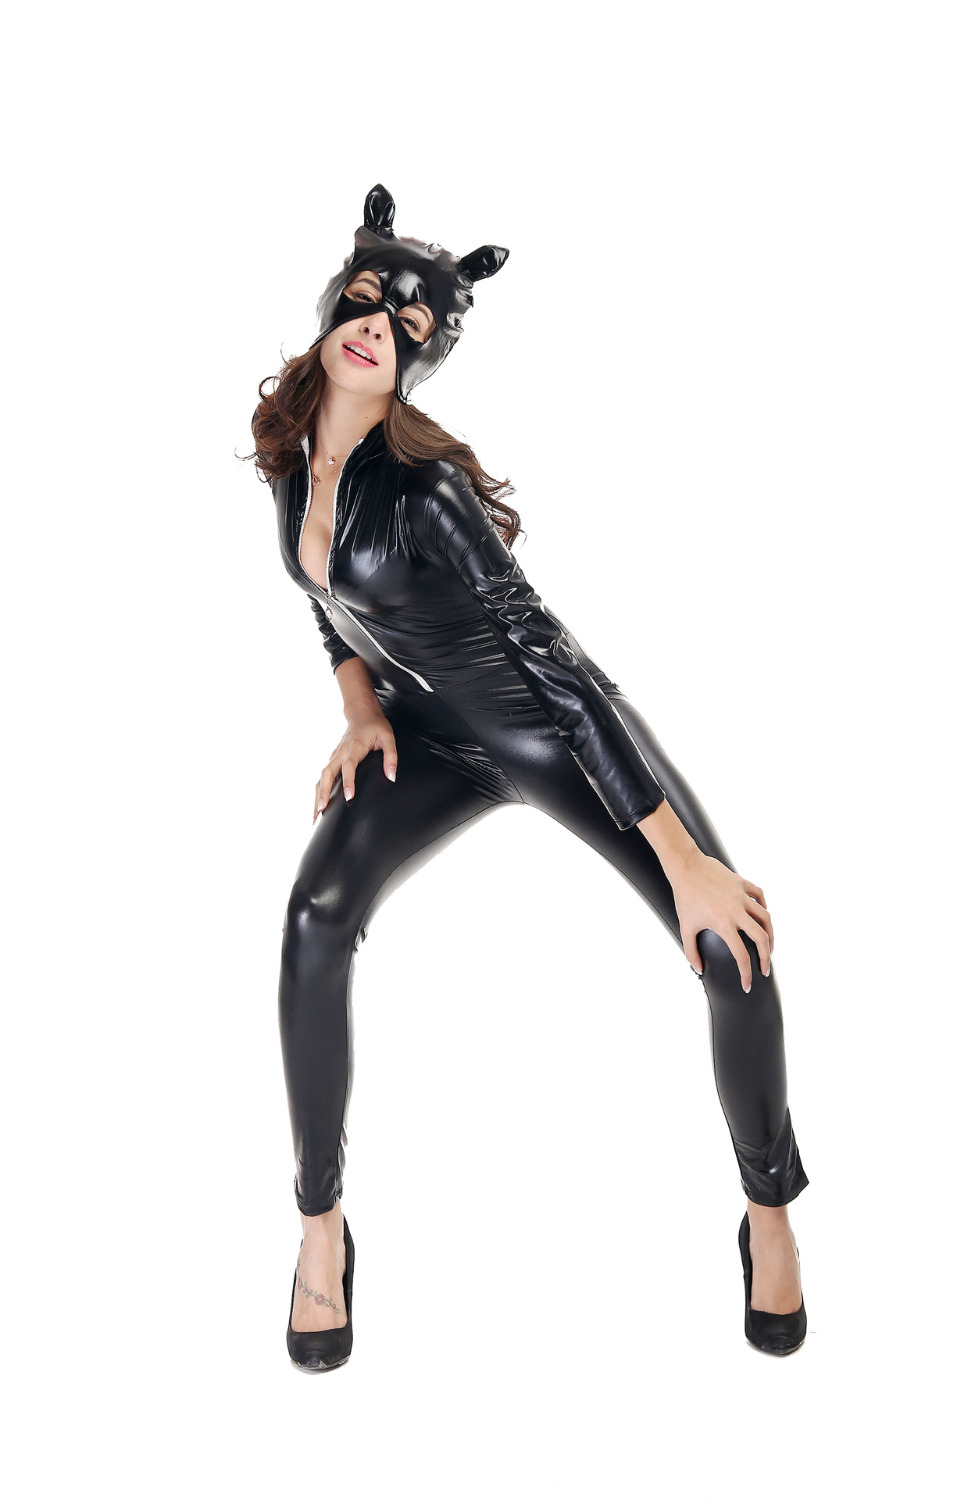 Buy Woman Animal Fuax Leather Catsuit 2017 New Arrival Sexy Gothic Punk Fetish Black Latex Catsuit Faux Leather Costume PU Jumpsuit